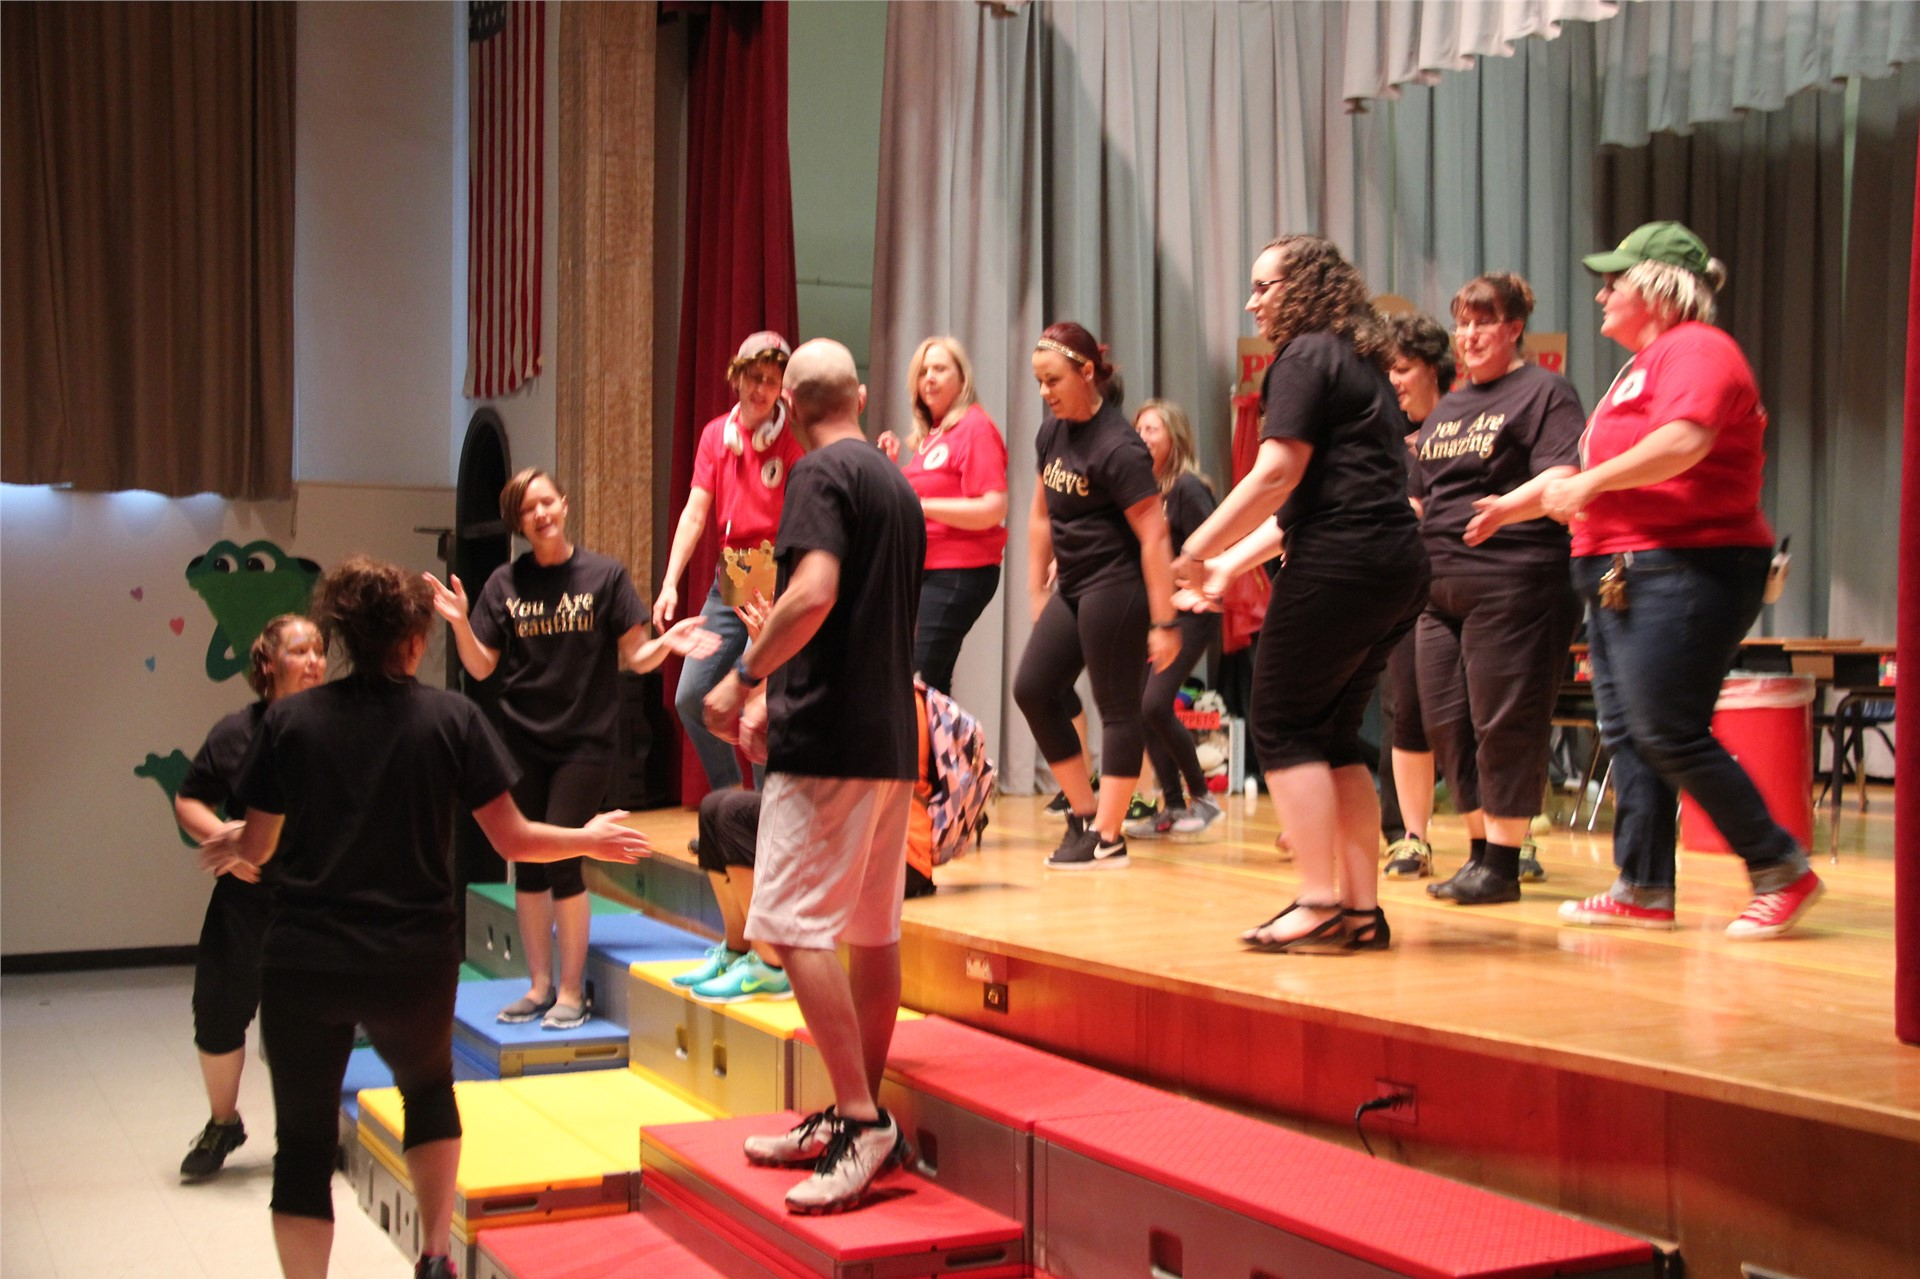 teachers on stage dance in talent show.